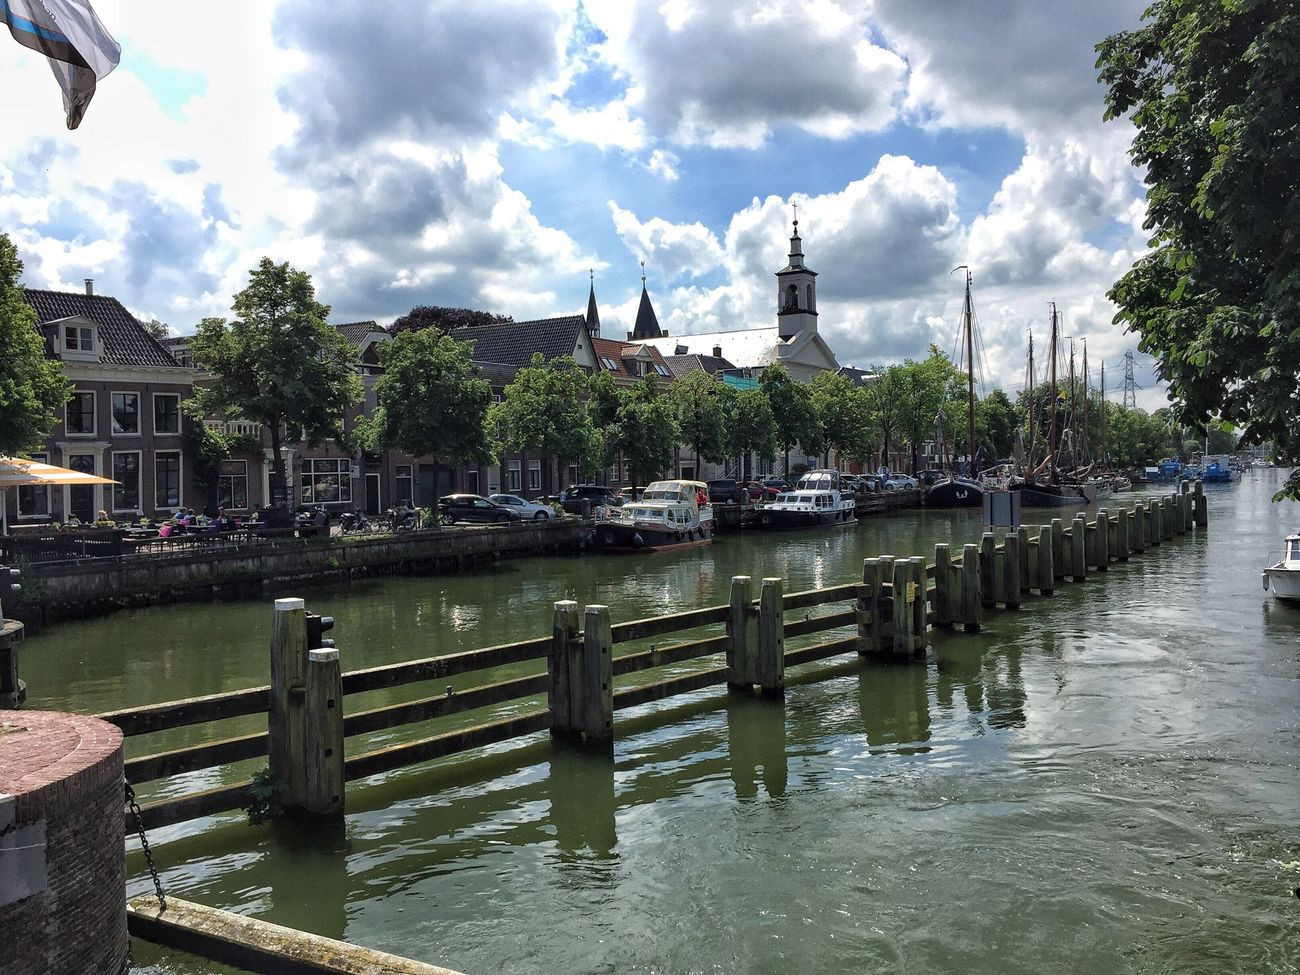 Muiden Netherlands Peace And Quiet Love Is In The Air Canals And Waterways Canal Walks Castel Feeling Good Clouds And Sky Muiden Castel